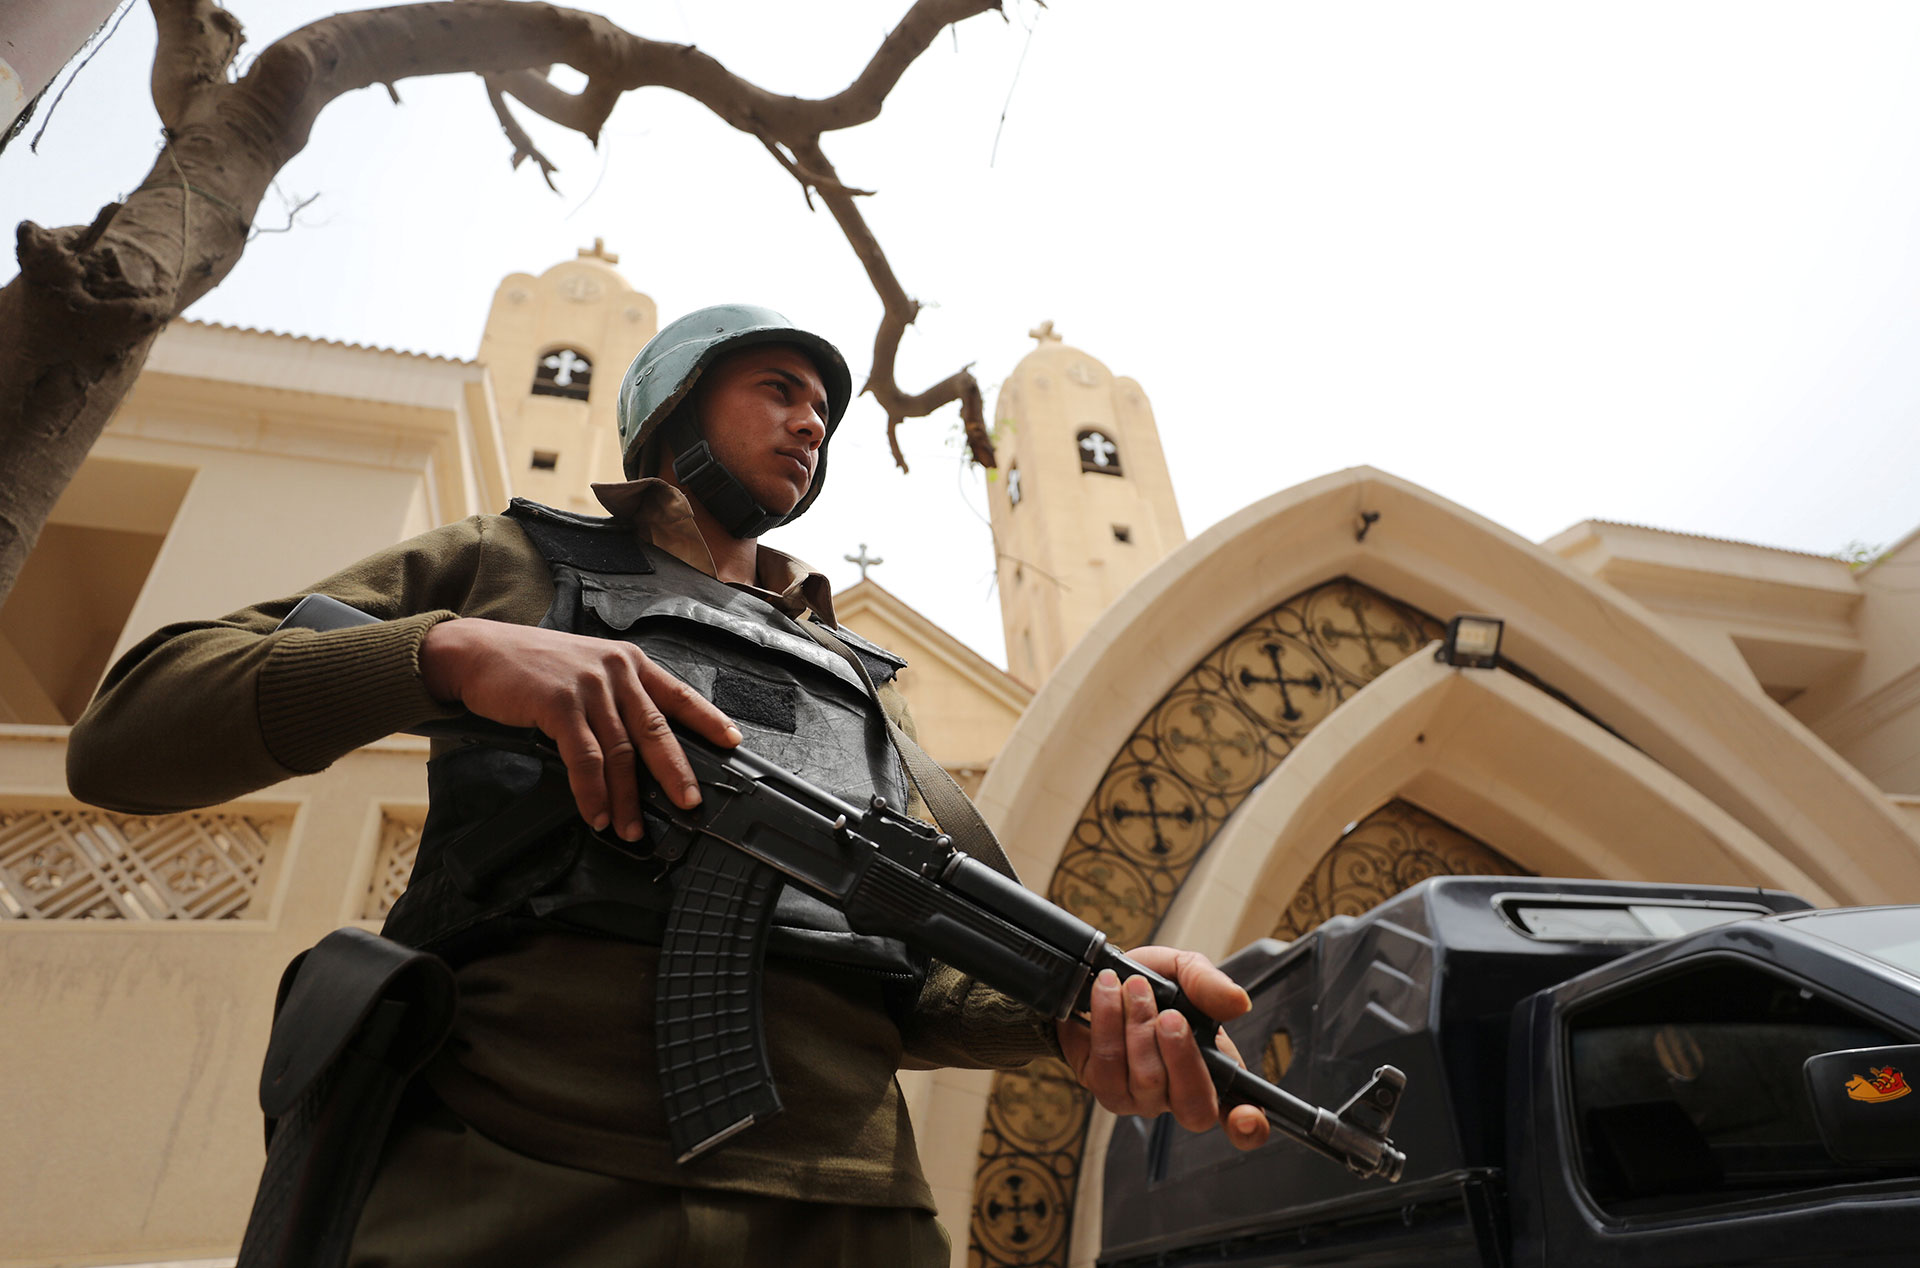 Islamic State seeks to impose religious rules in Egypt's North Sinai